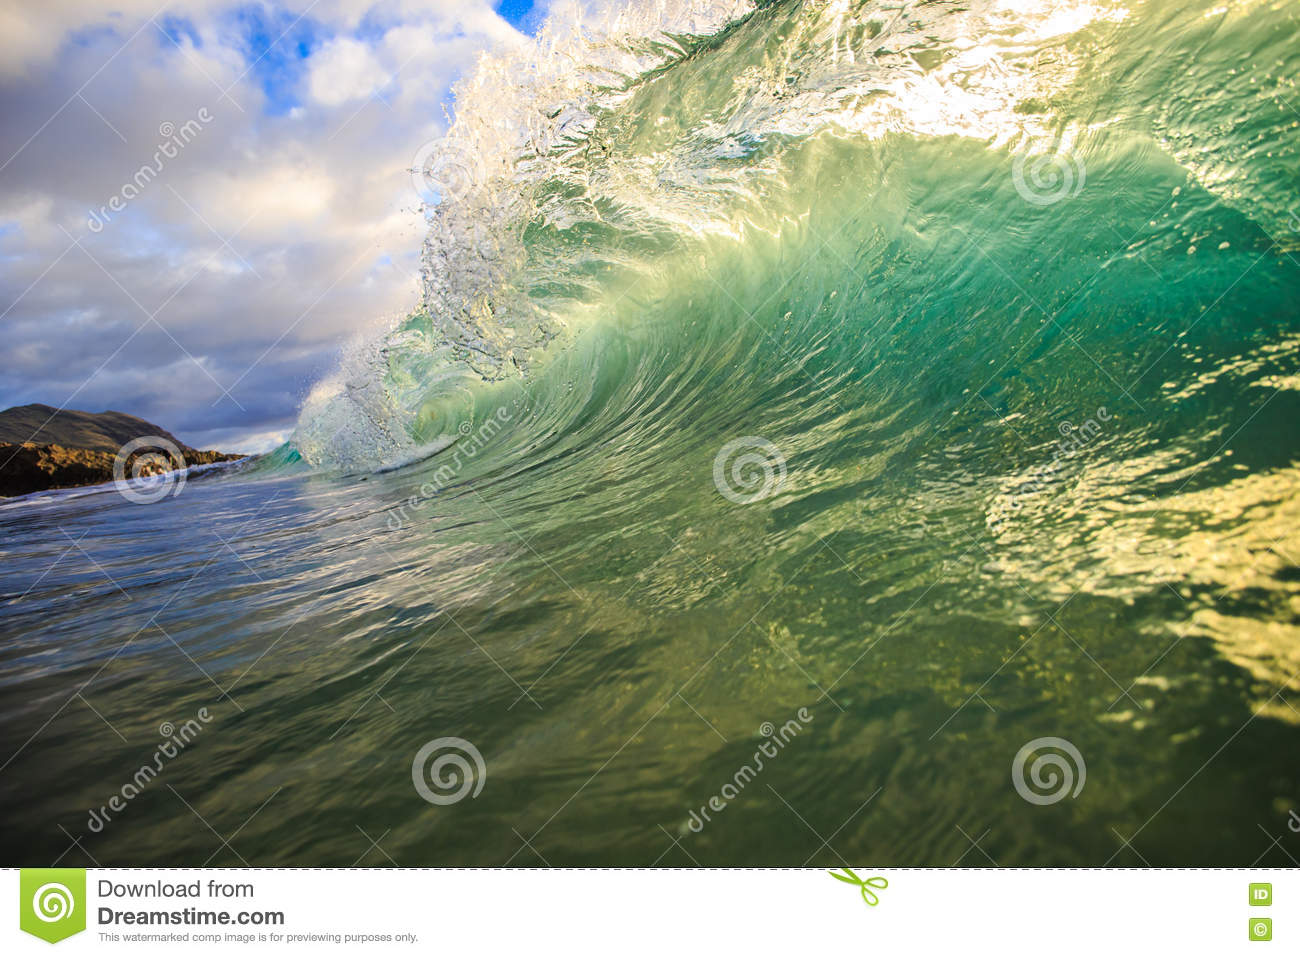 Colorful Surfing Wave Lit with sunlight in Oahu Hawaii USA